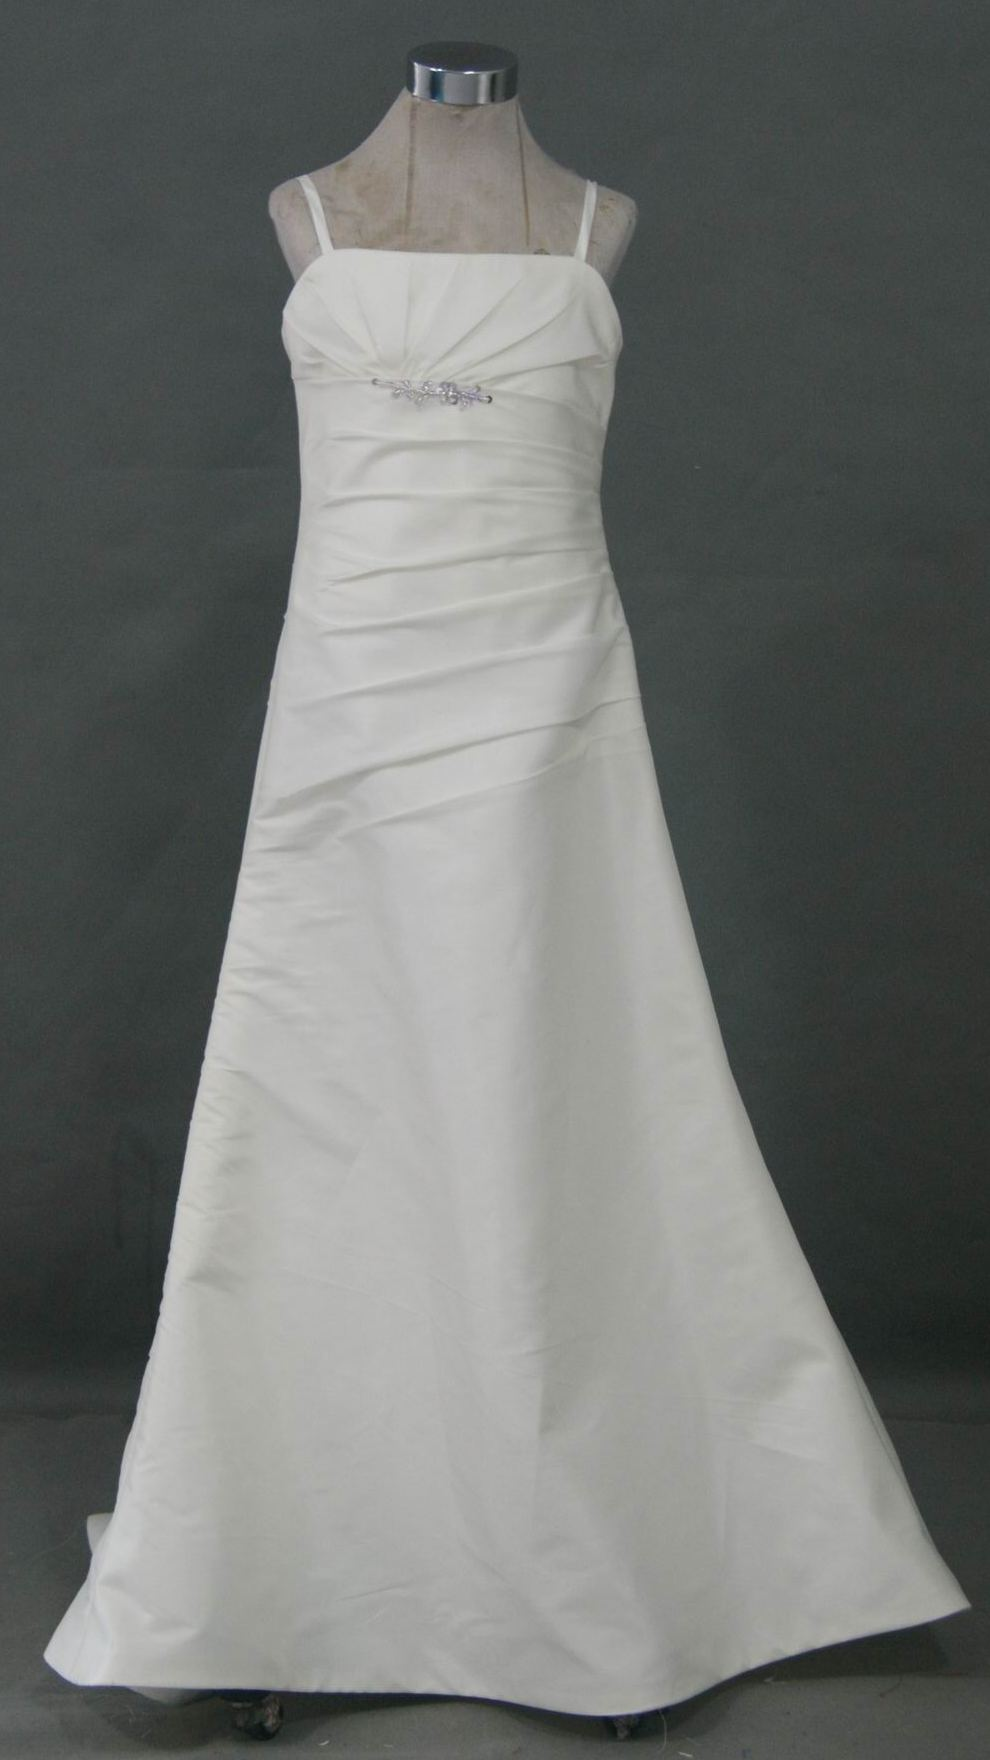 Strapless silky taffeta wedding gown